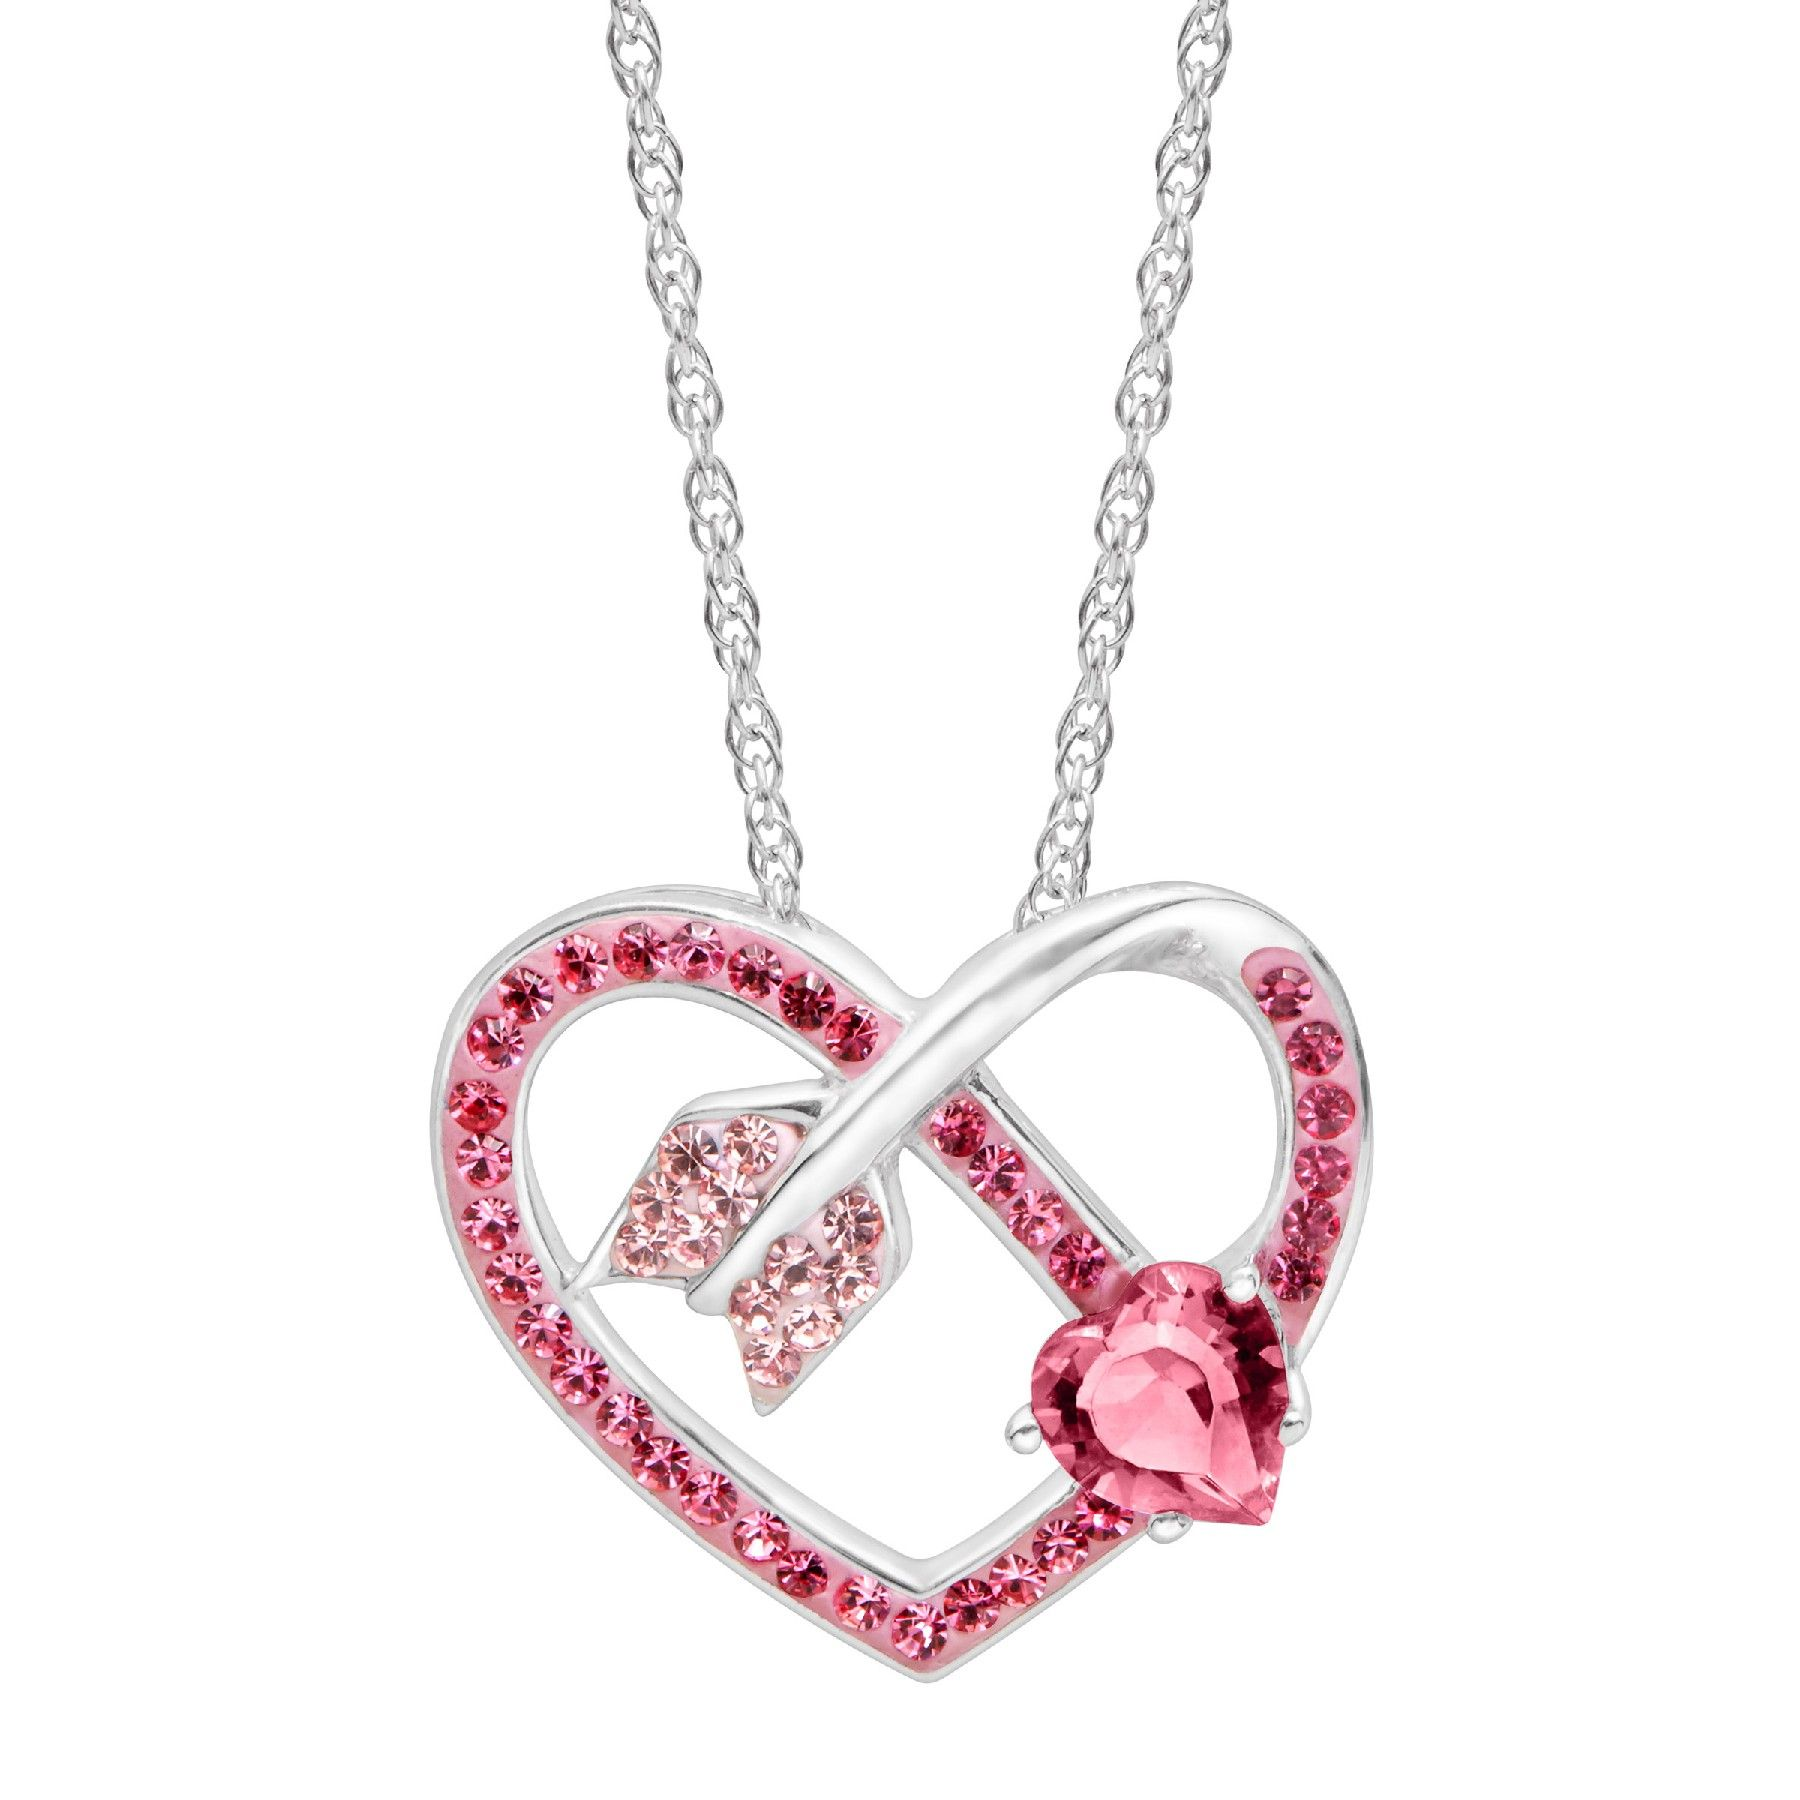 0fb6c4cff Arrow Heart Pendant With Pink & Rose Swarovski Crystals.25% OFF Heart  Collection - Limited Time Only! Shop Now and get your order before  Valentine's Day!